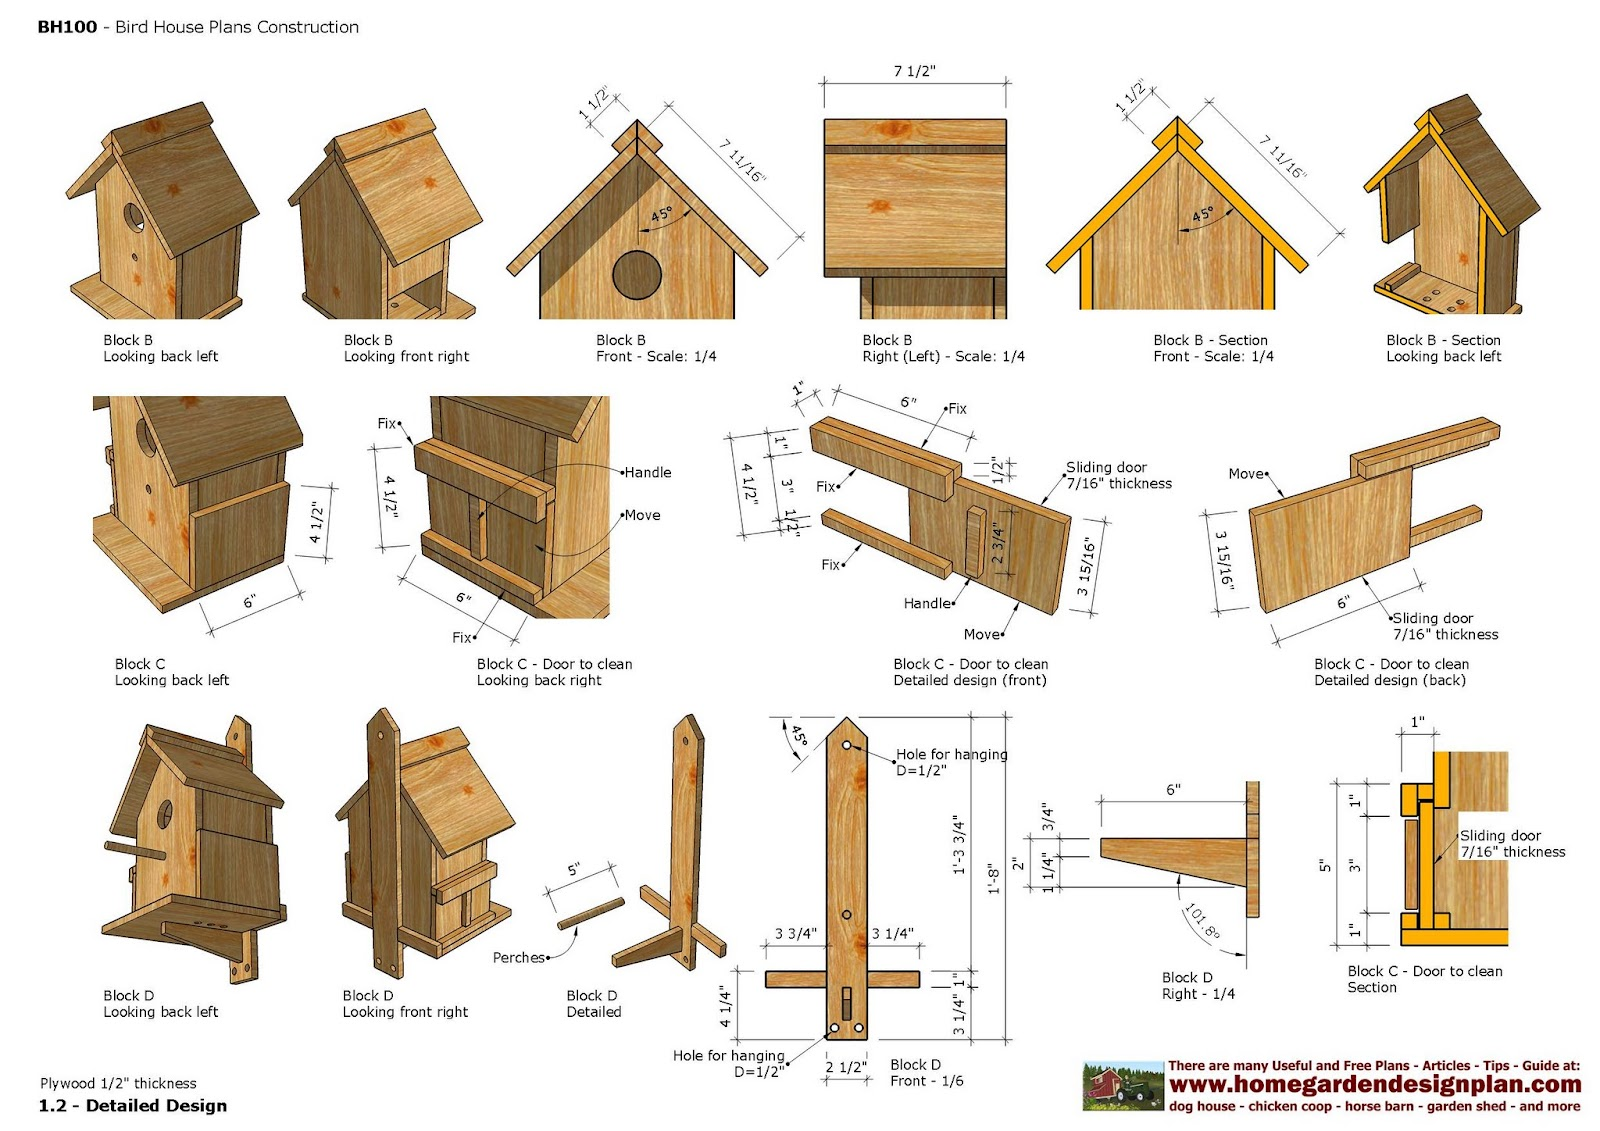 Home garden plans bh bird house plans construction for Plans house design